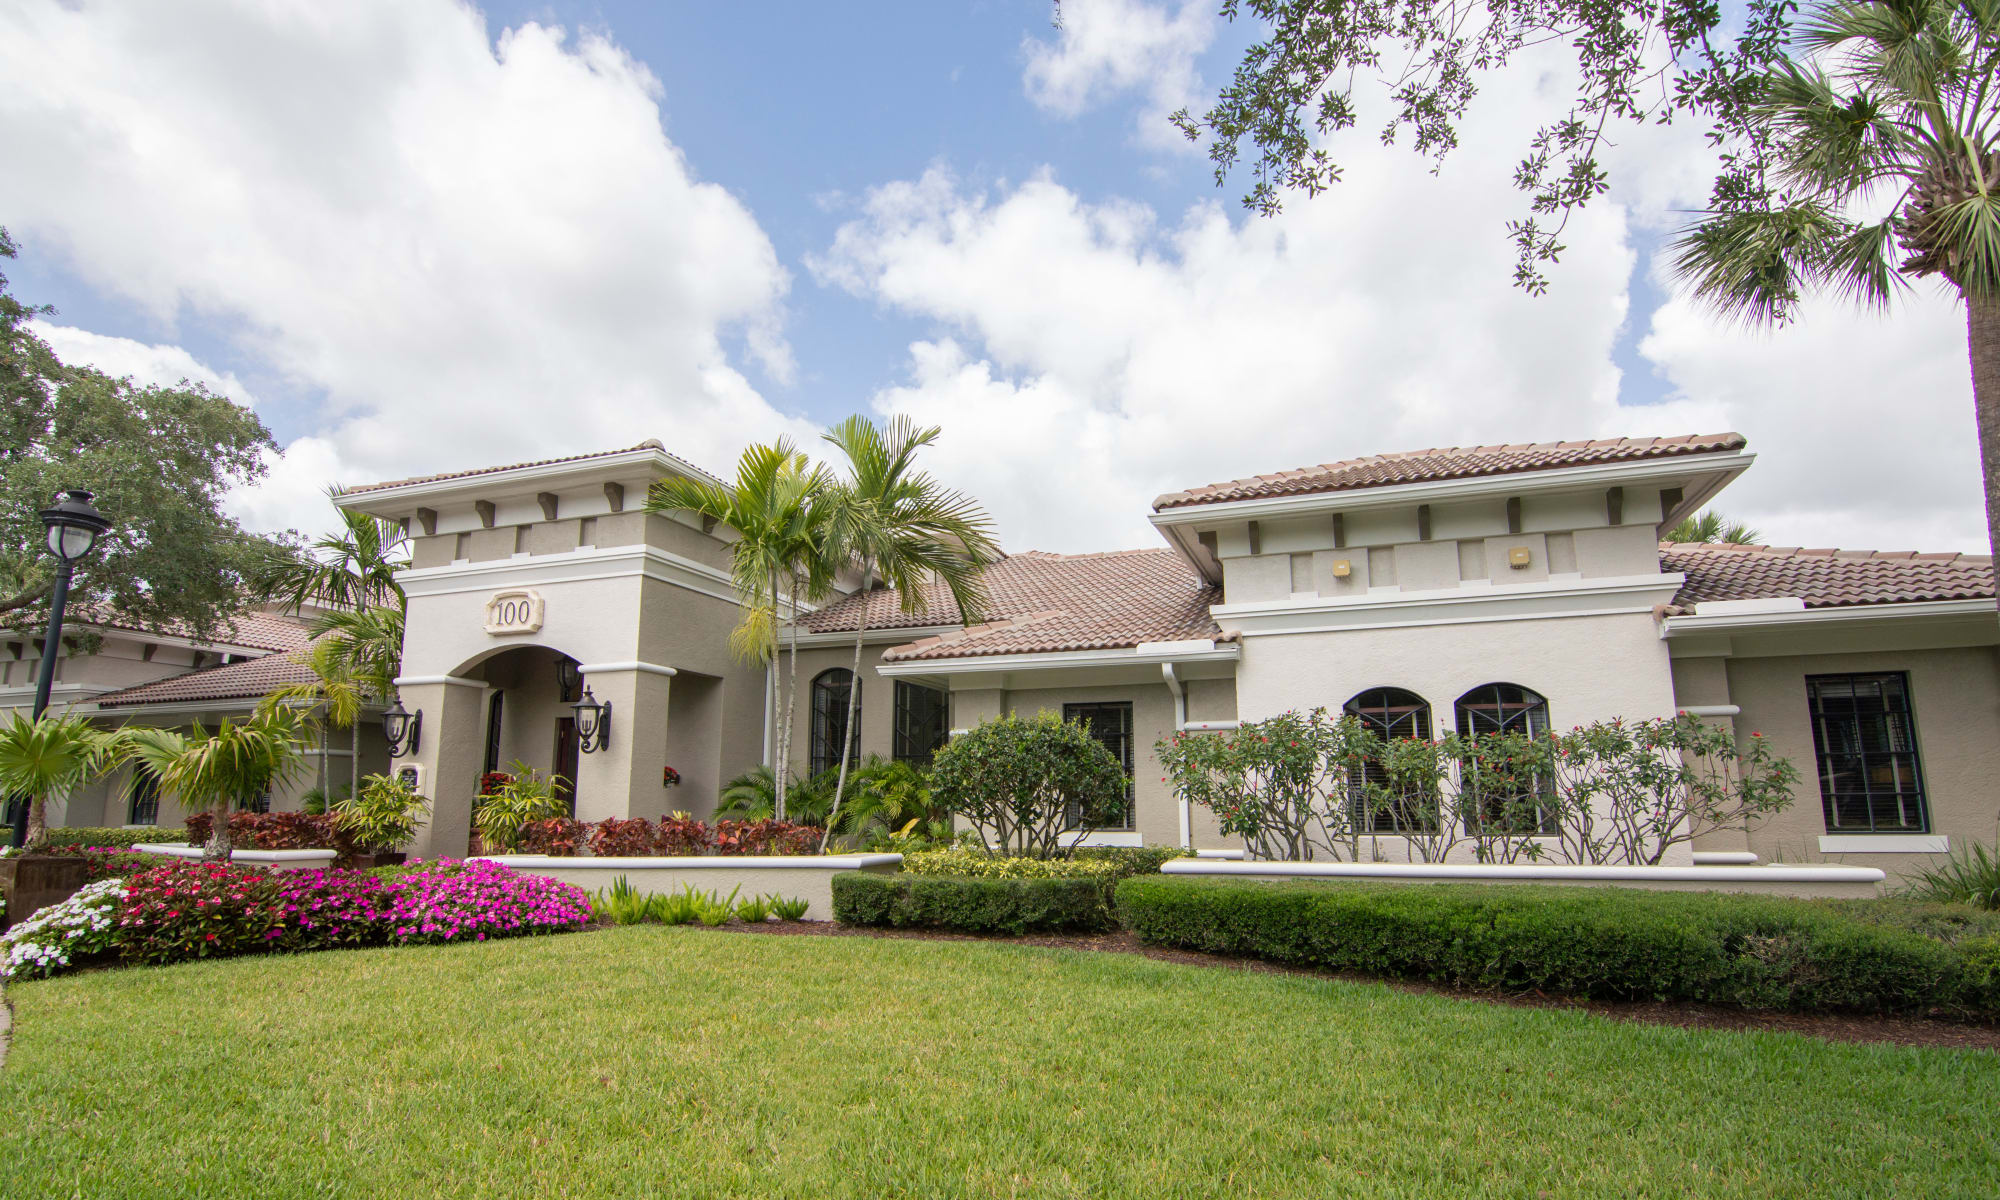 Mirasol apartments in palm beach gardens fl san merano - Palm beach gardens community center ...